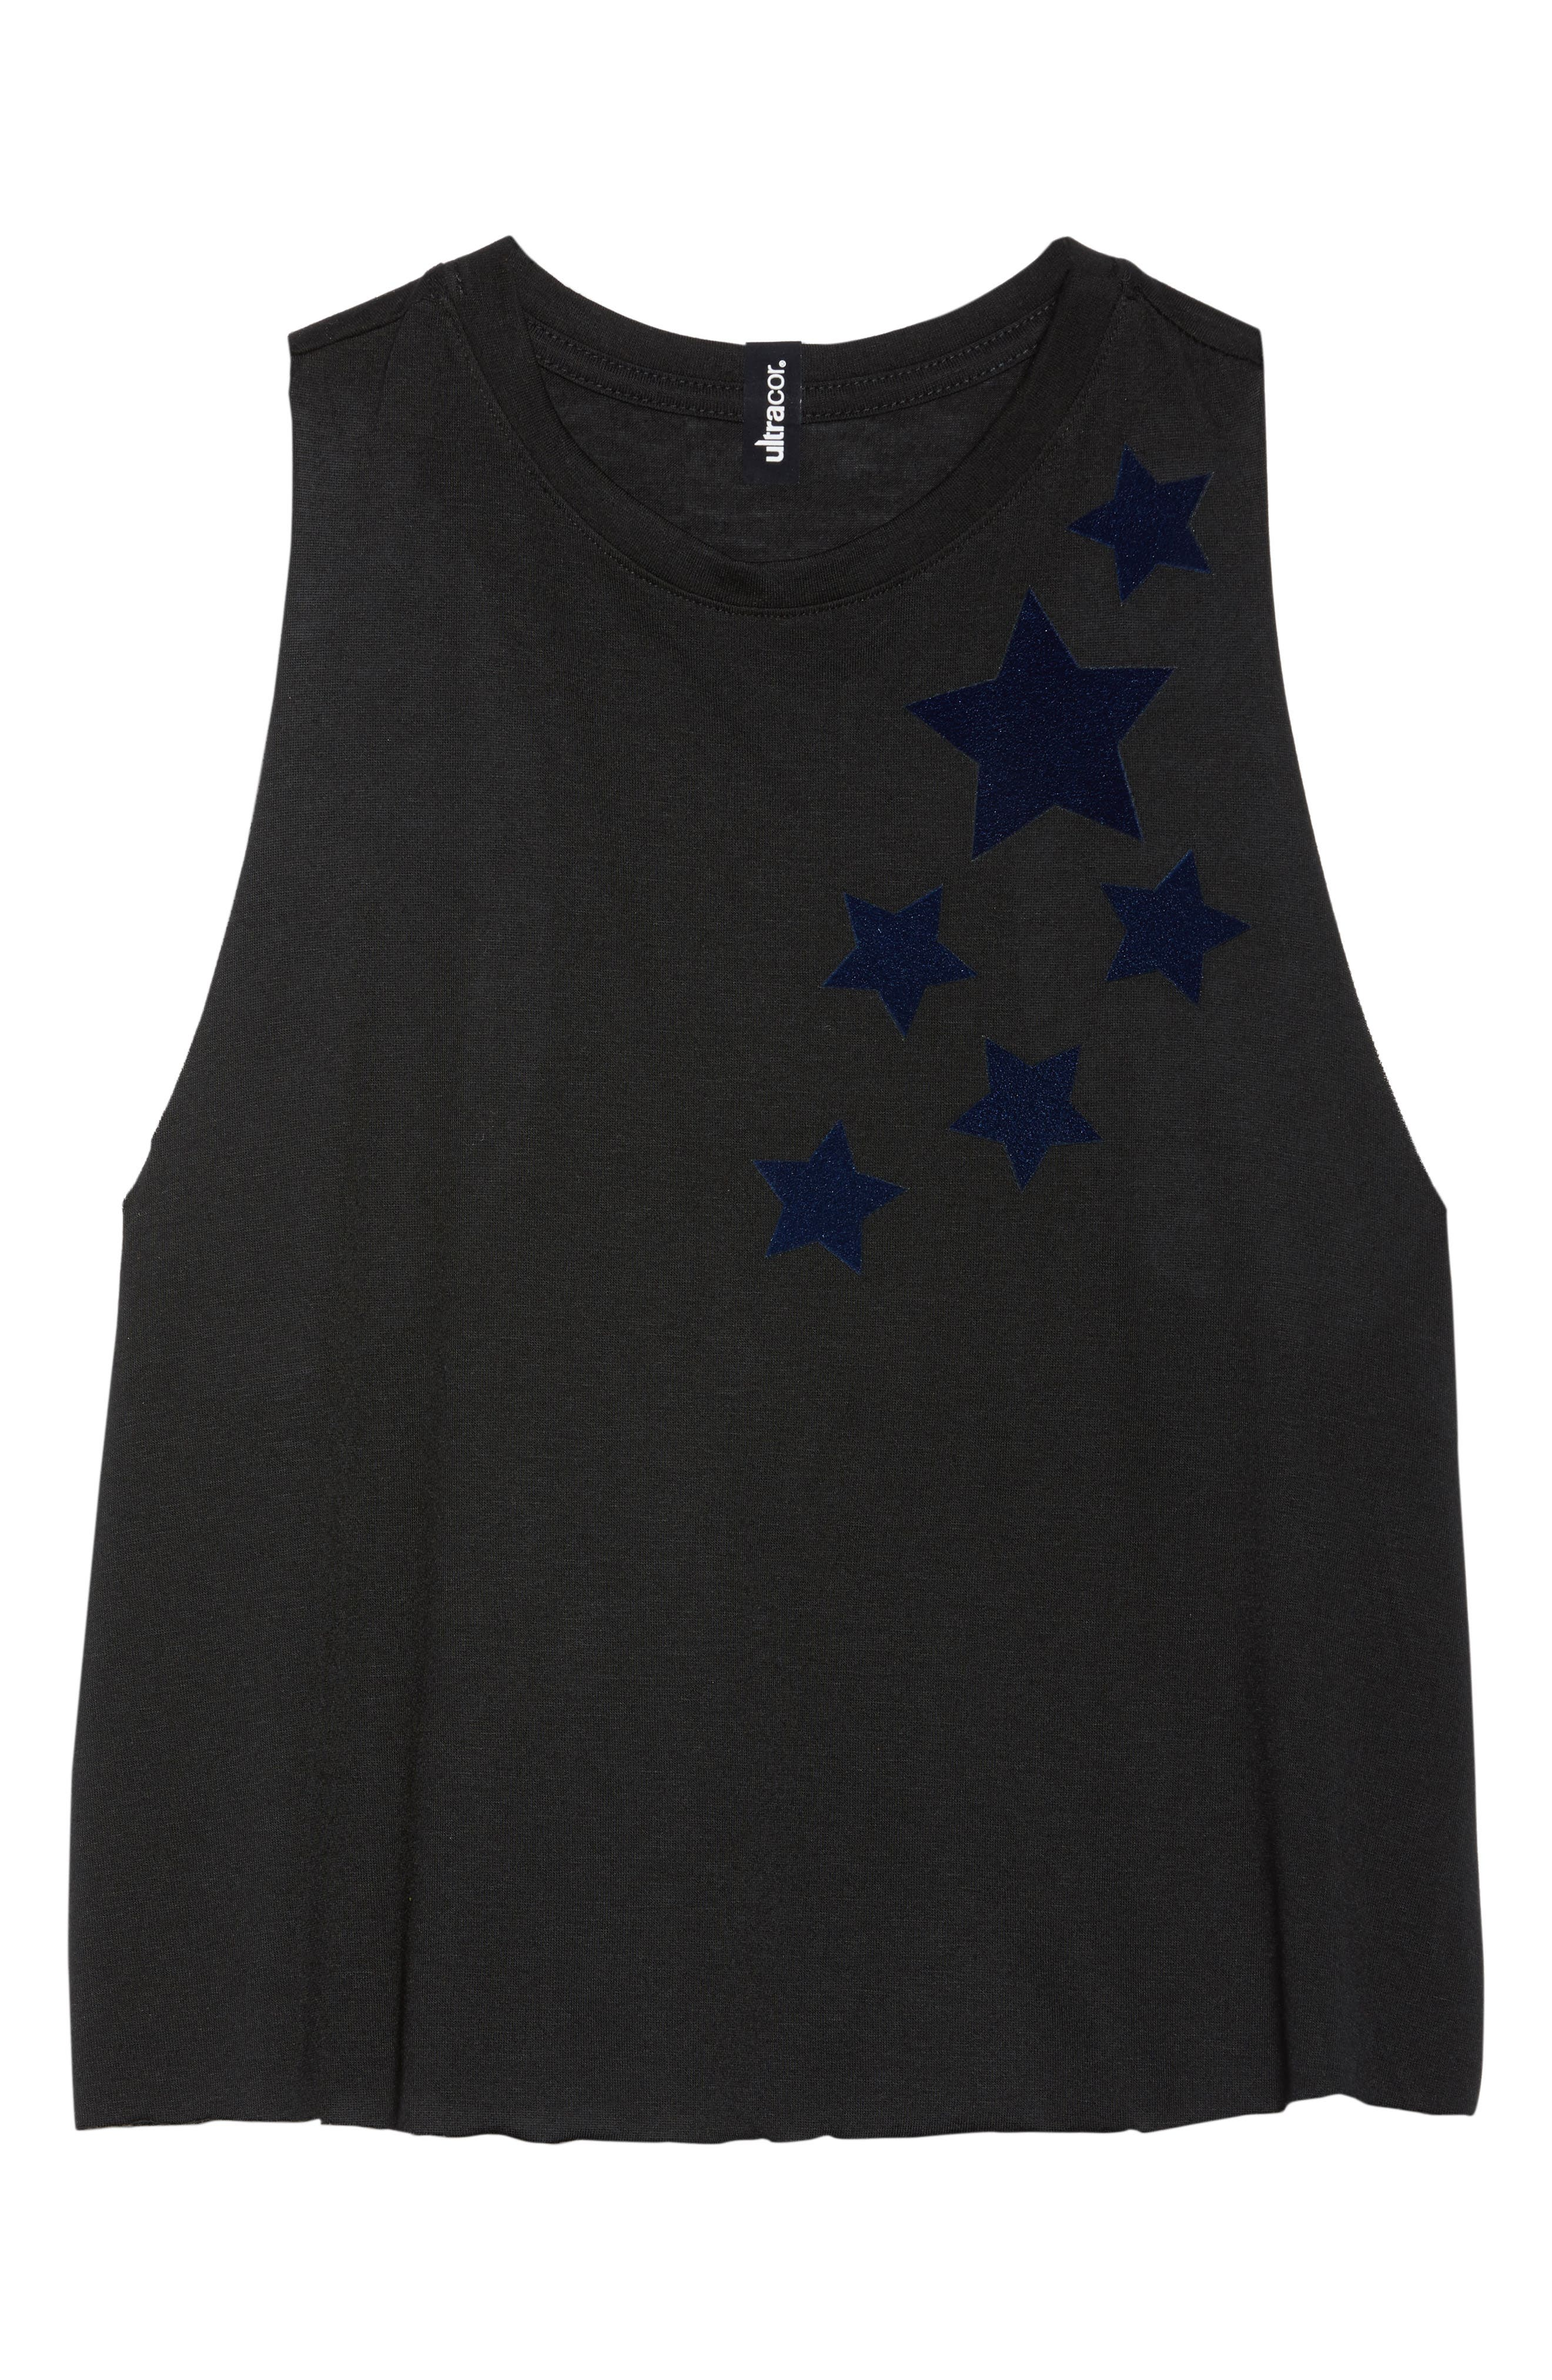 Velvet Stars Racerback Tank,                             Alternate thumbnail 7, color,                             NERO/ NAVY